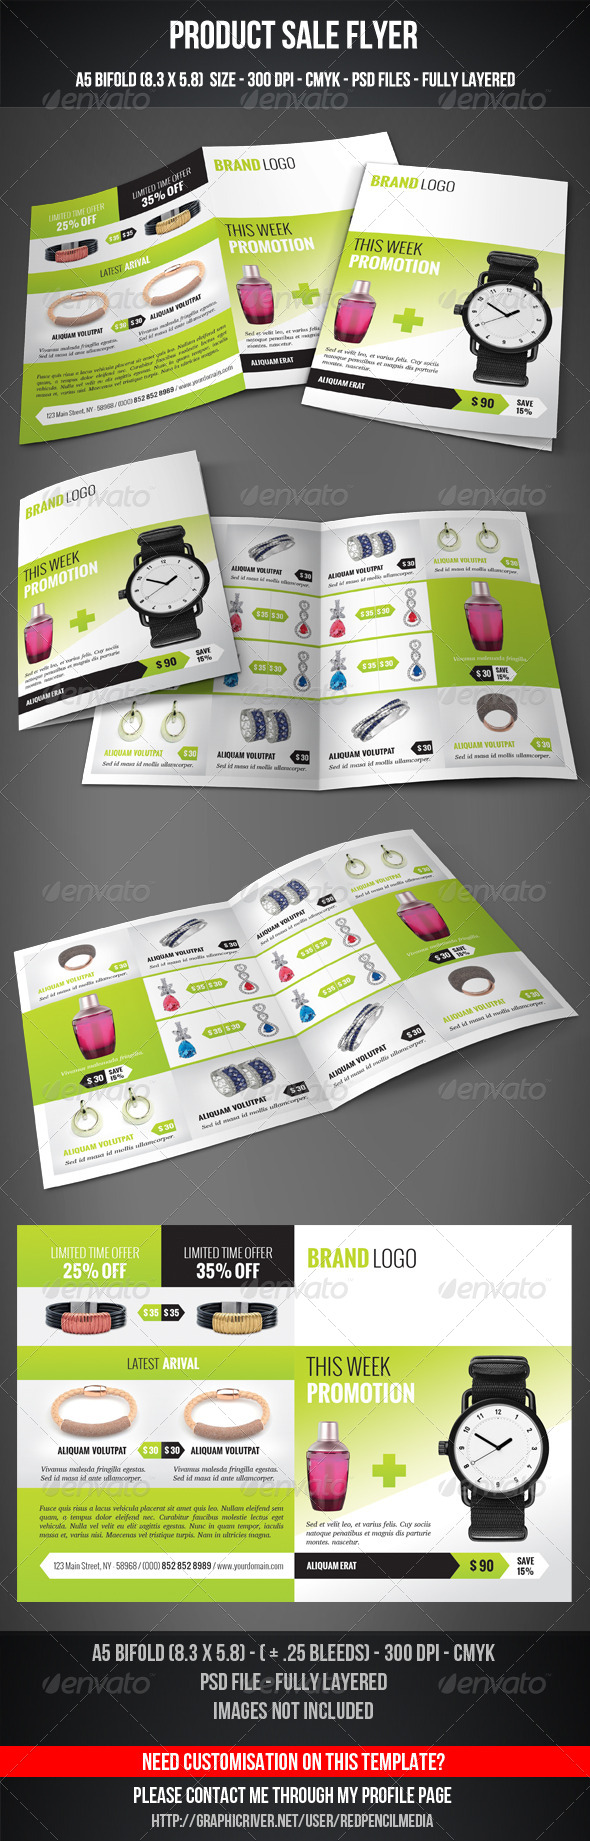 GraphicRiver Product Sale Flyer 7420846